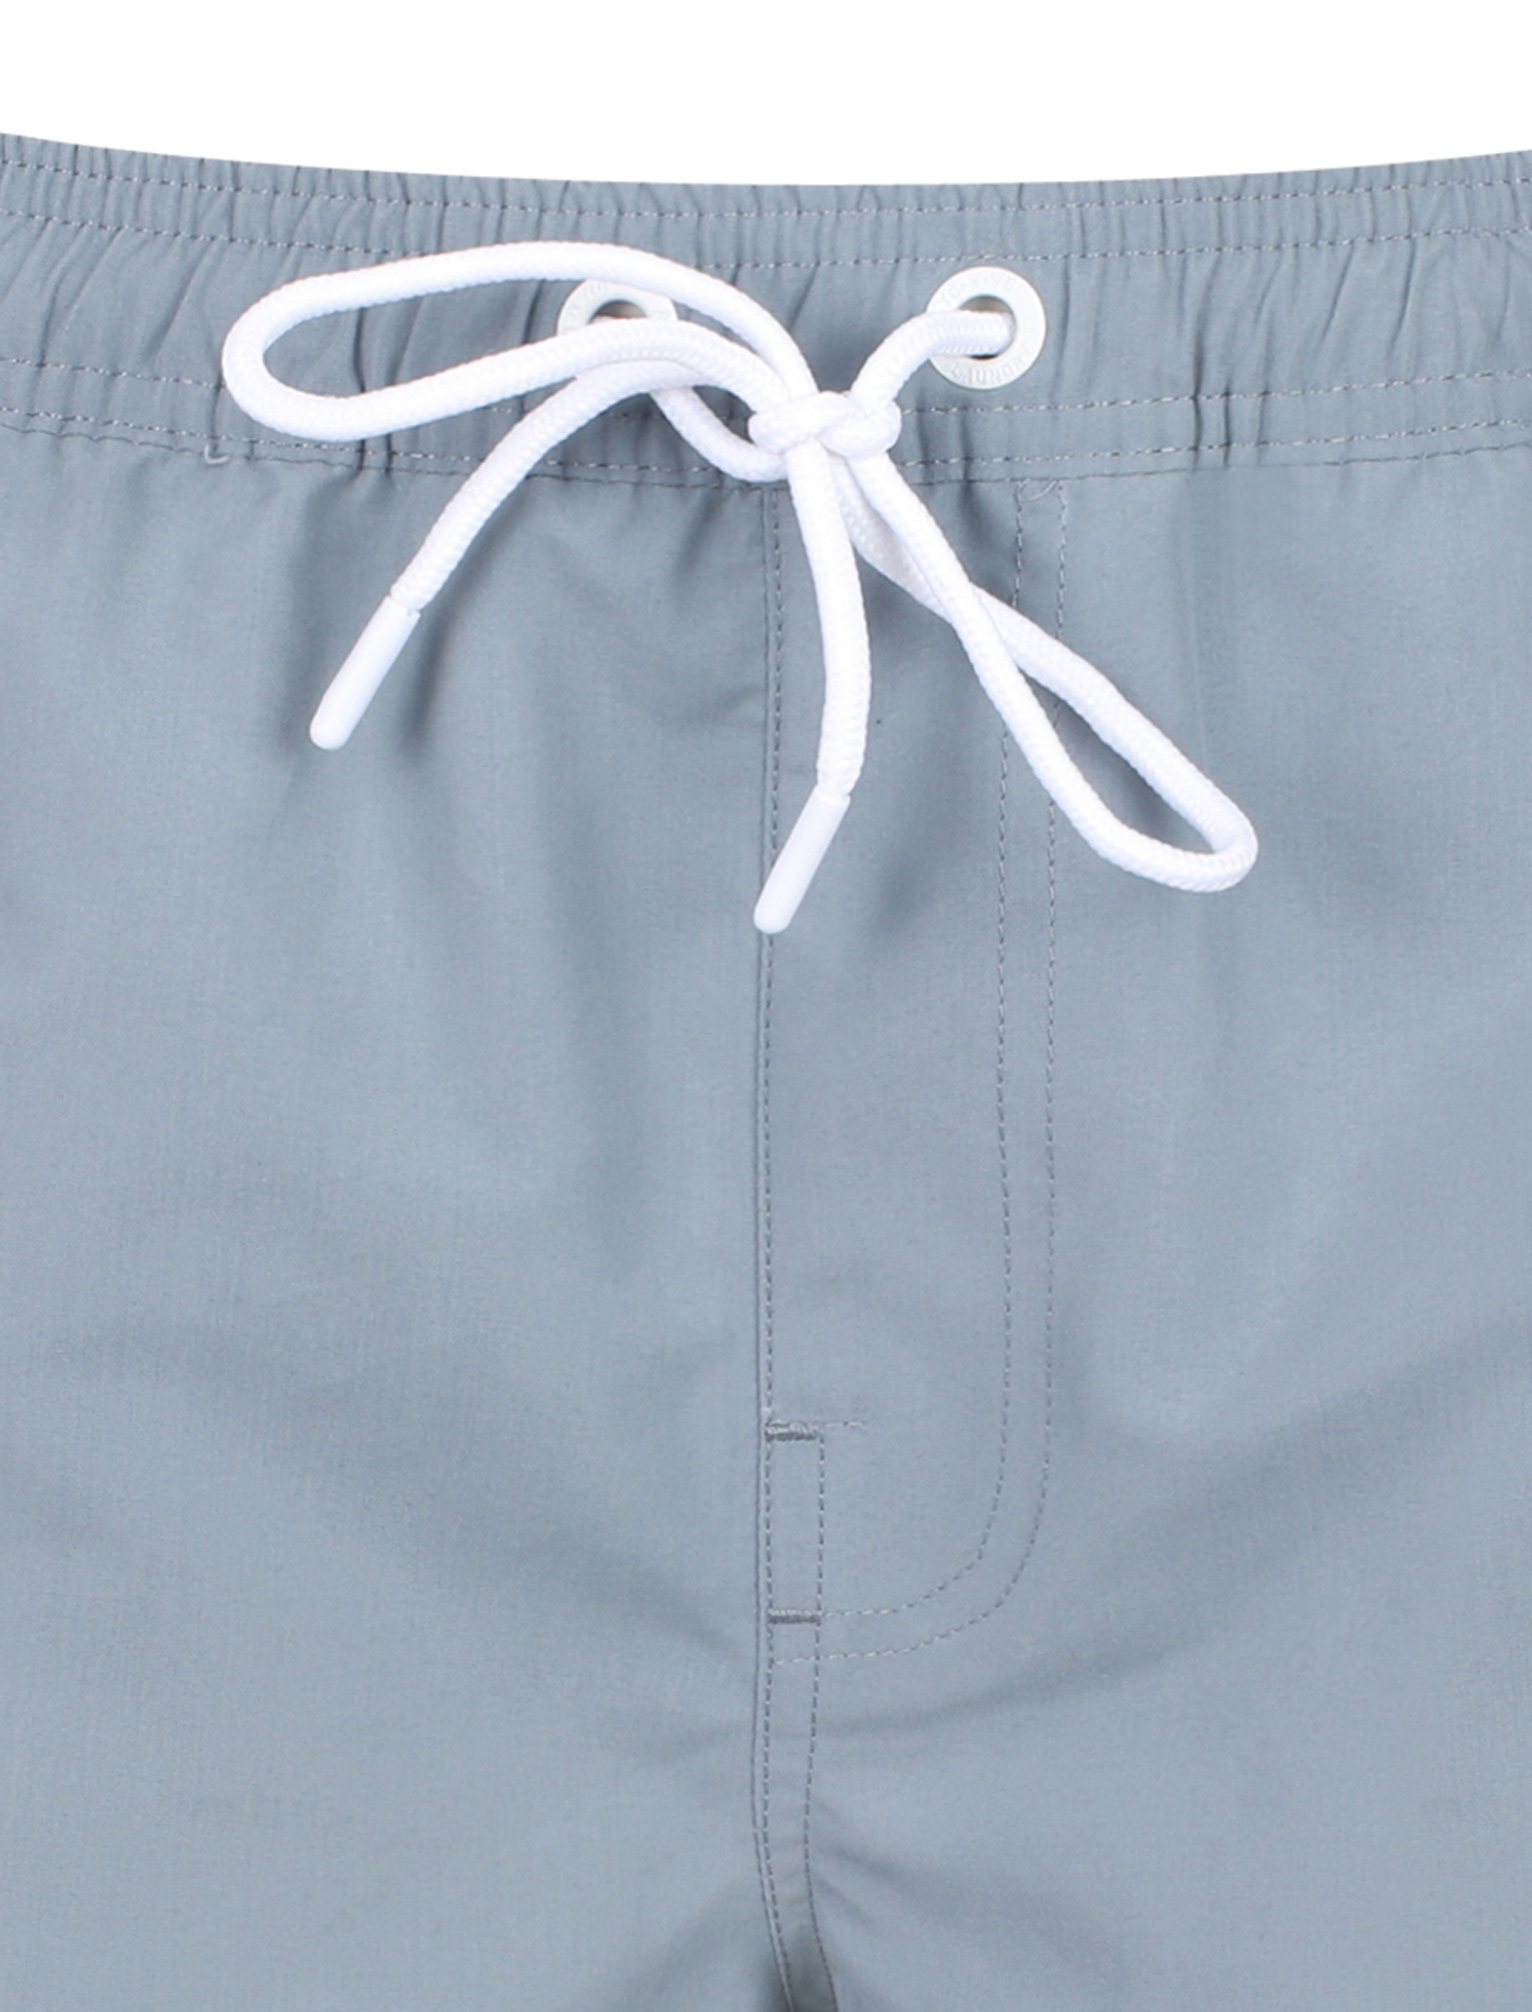 New-Mens-Tokyo-Laundry-Branded-Classic-Soft-Swim-Shorts-With-Pockets-Size-S-XXL thumbnail 3